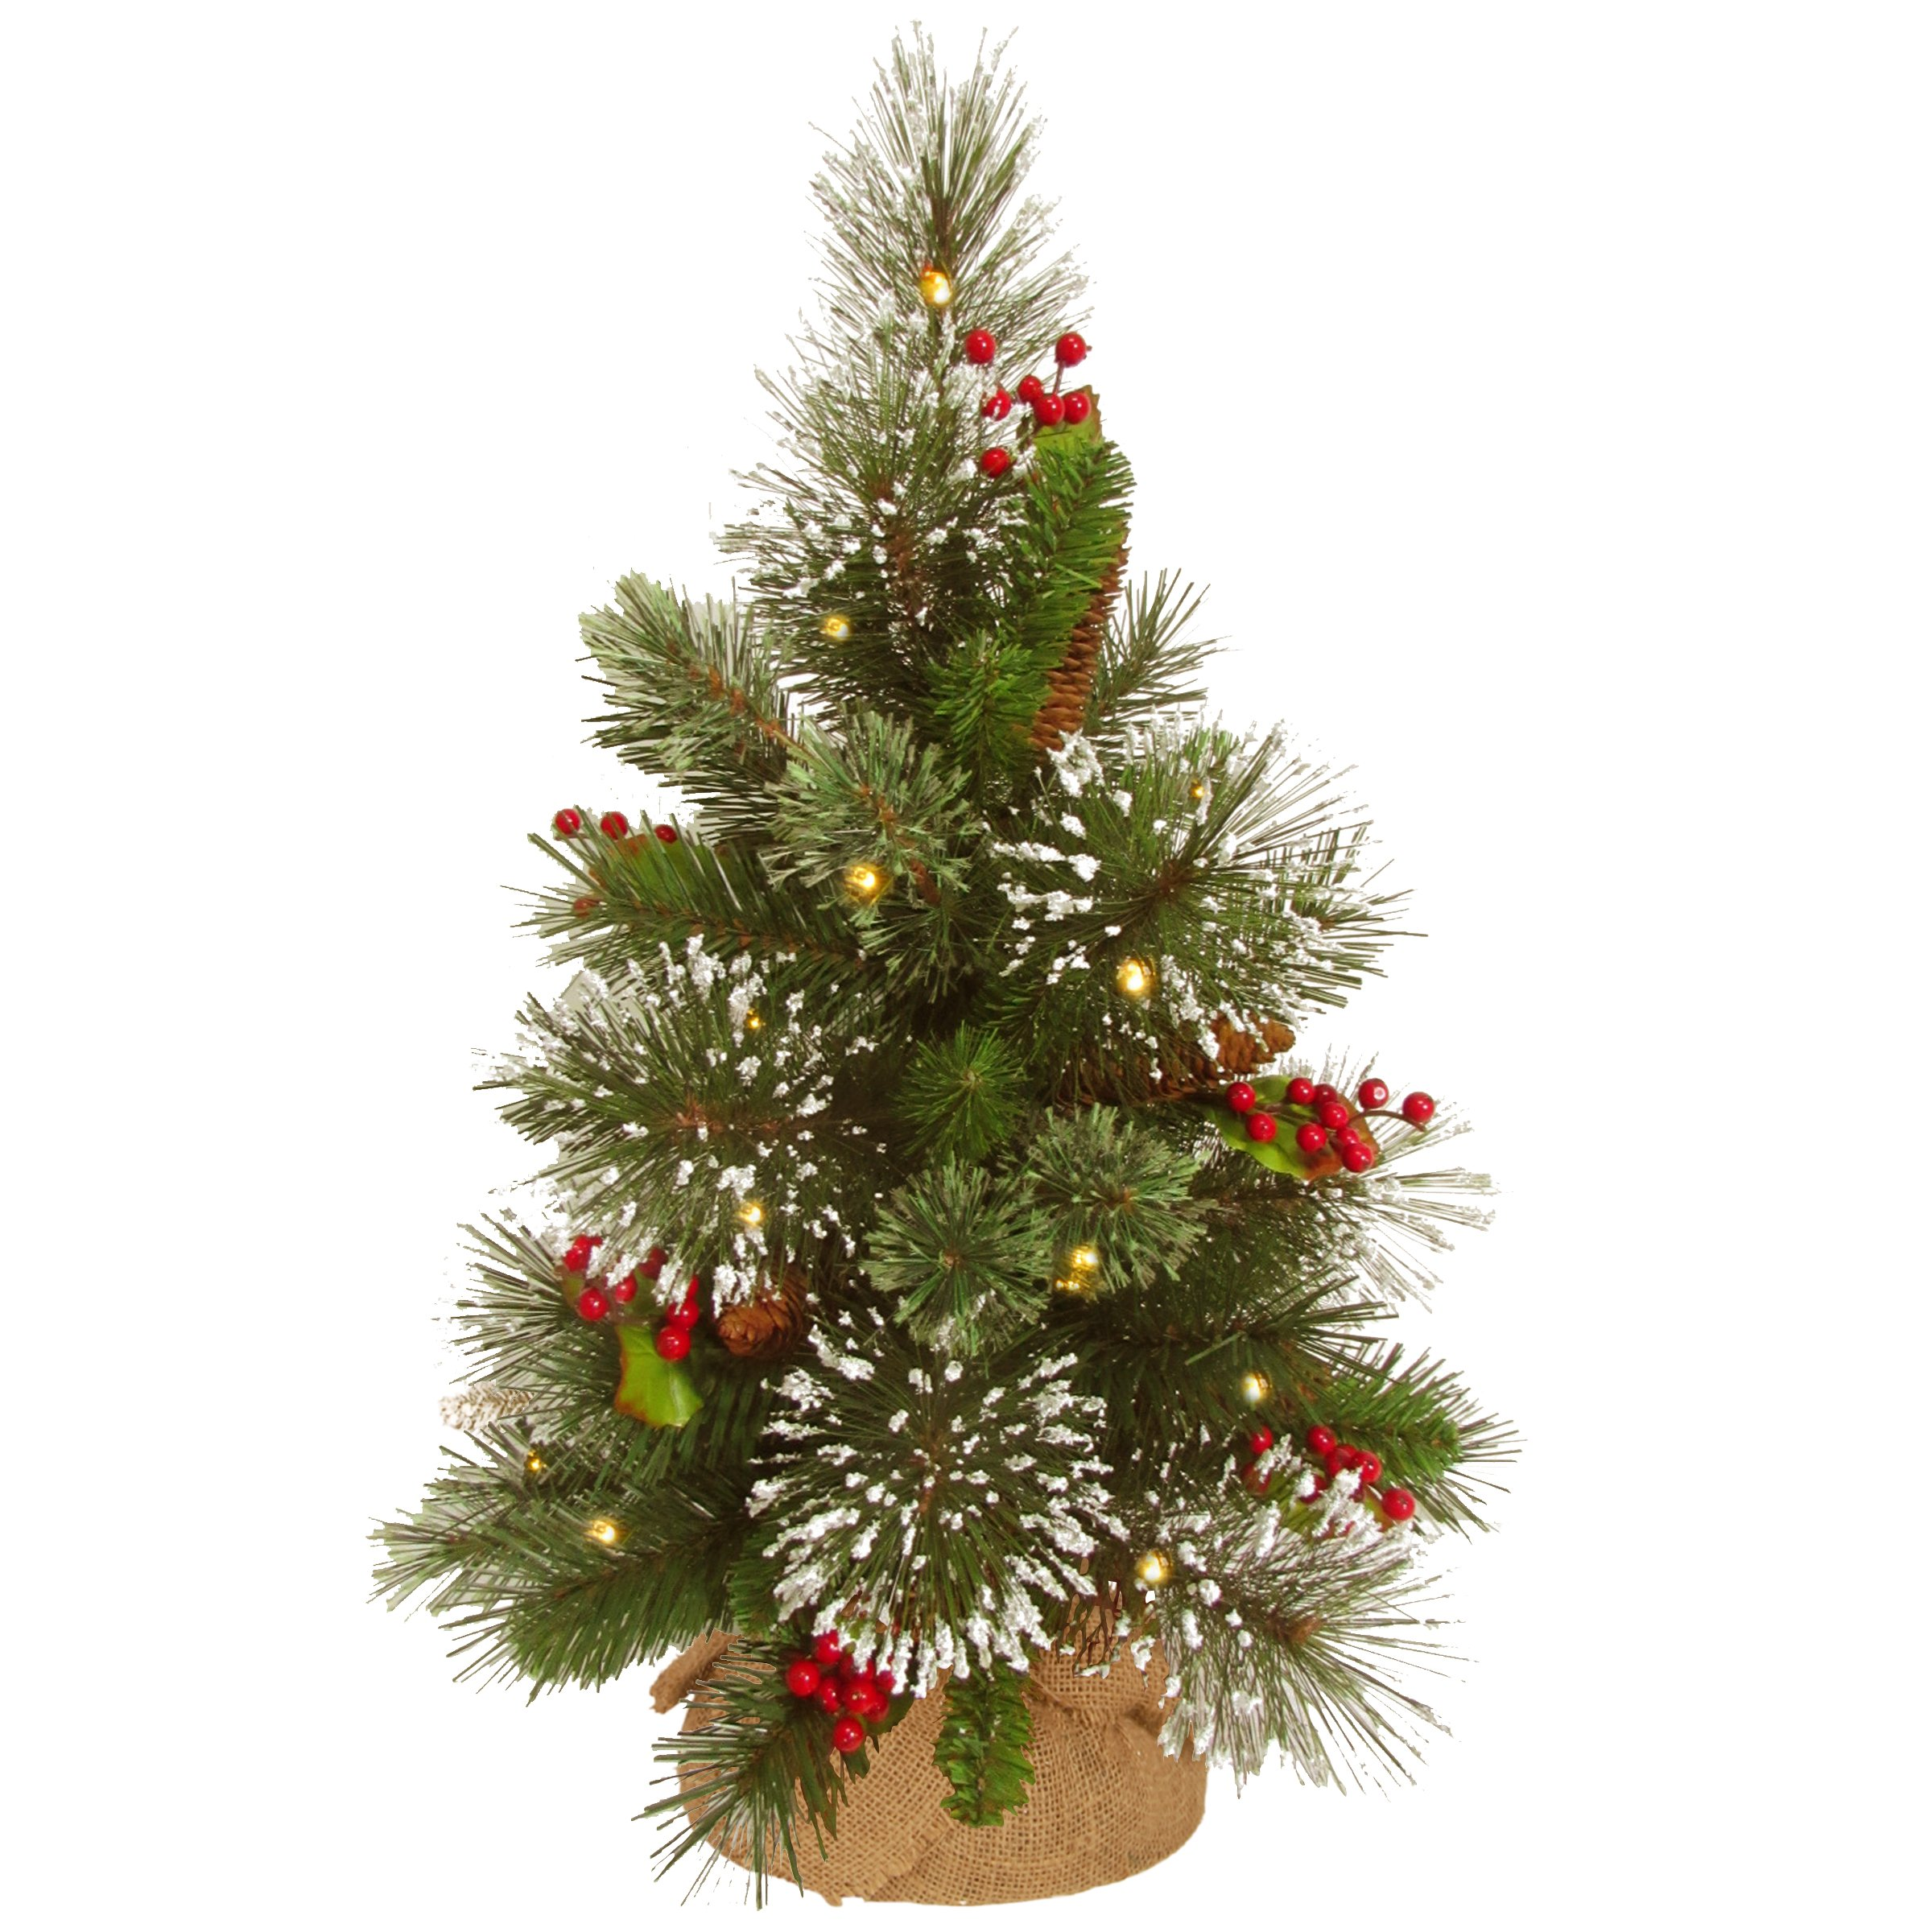 National Tree 18 Inch Wintry Pine Tree with Cones, Red ...